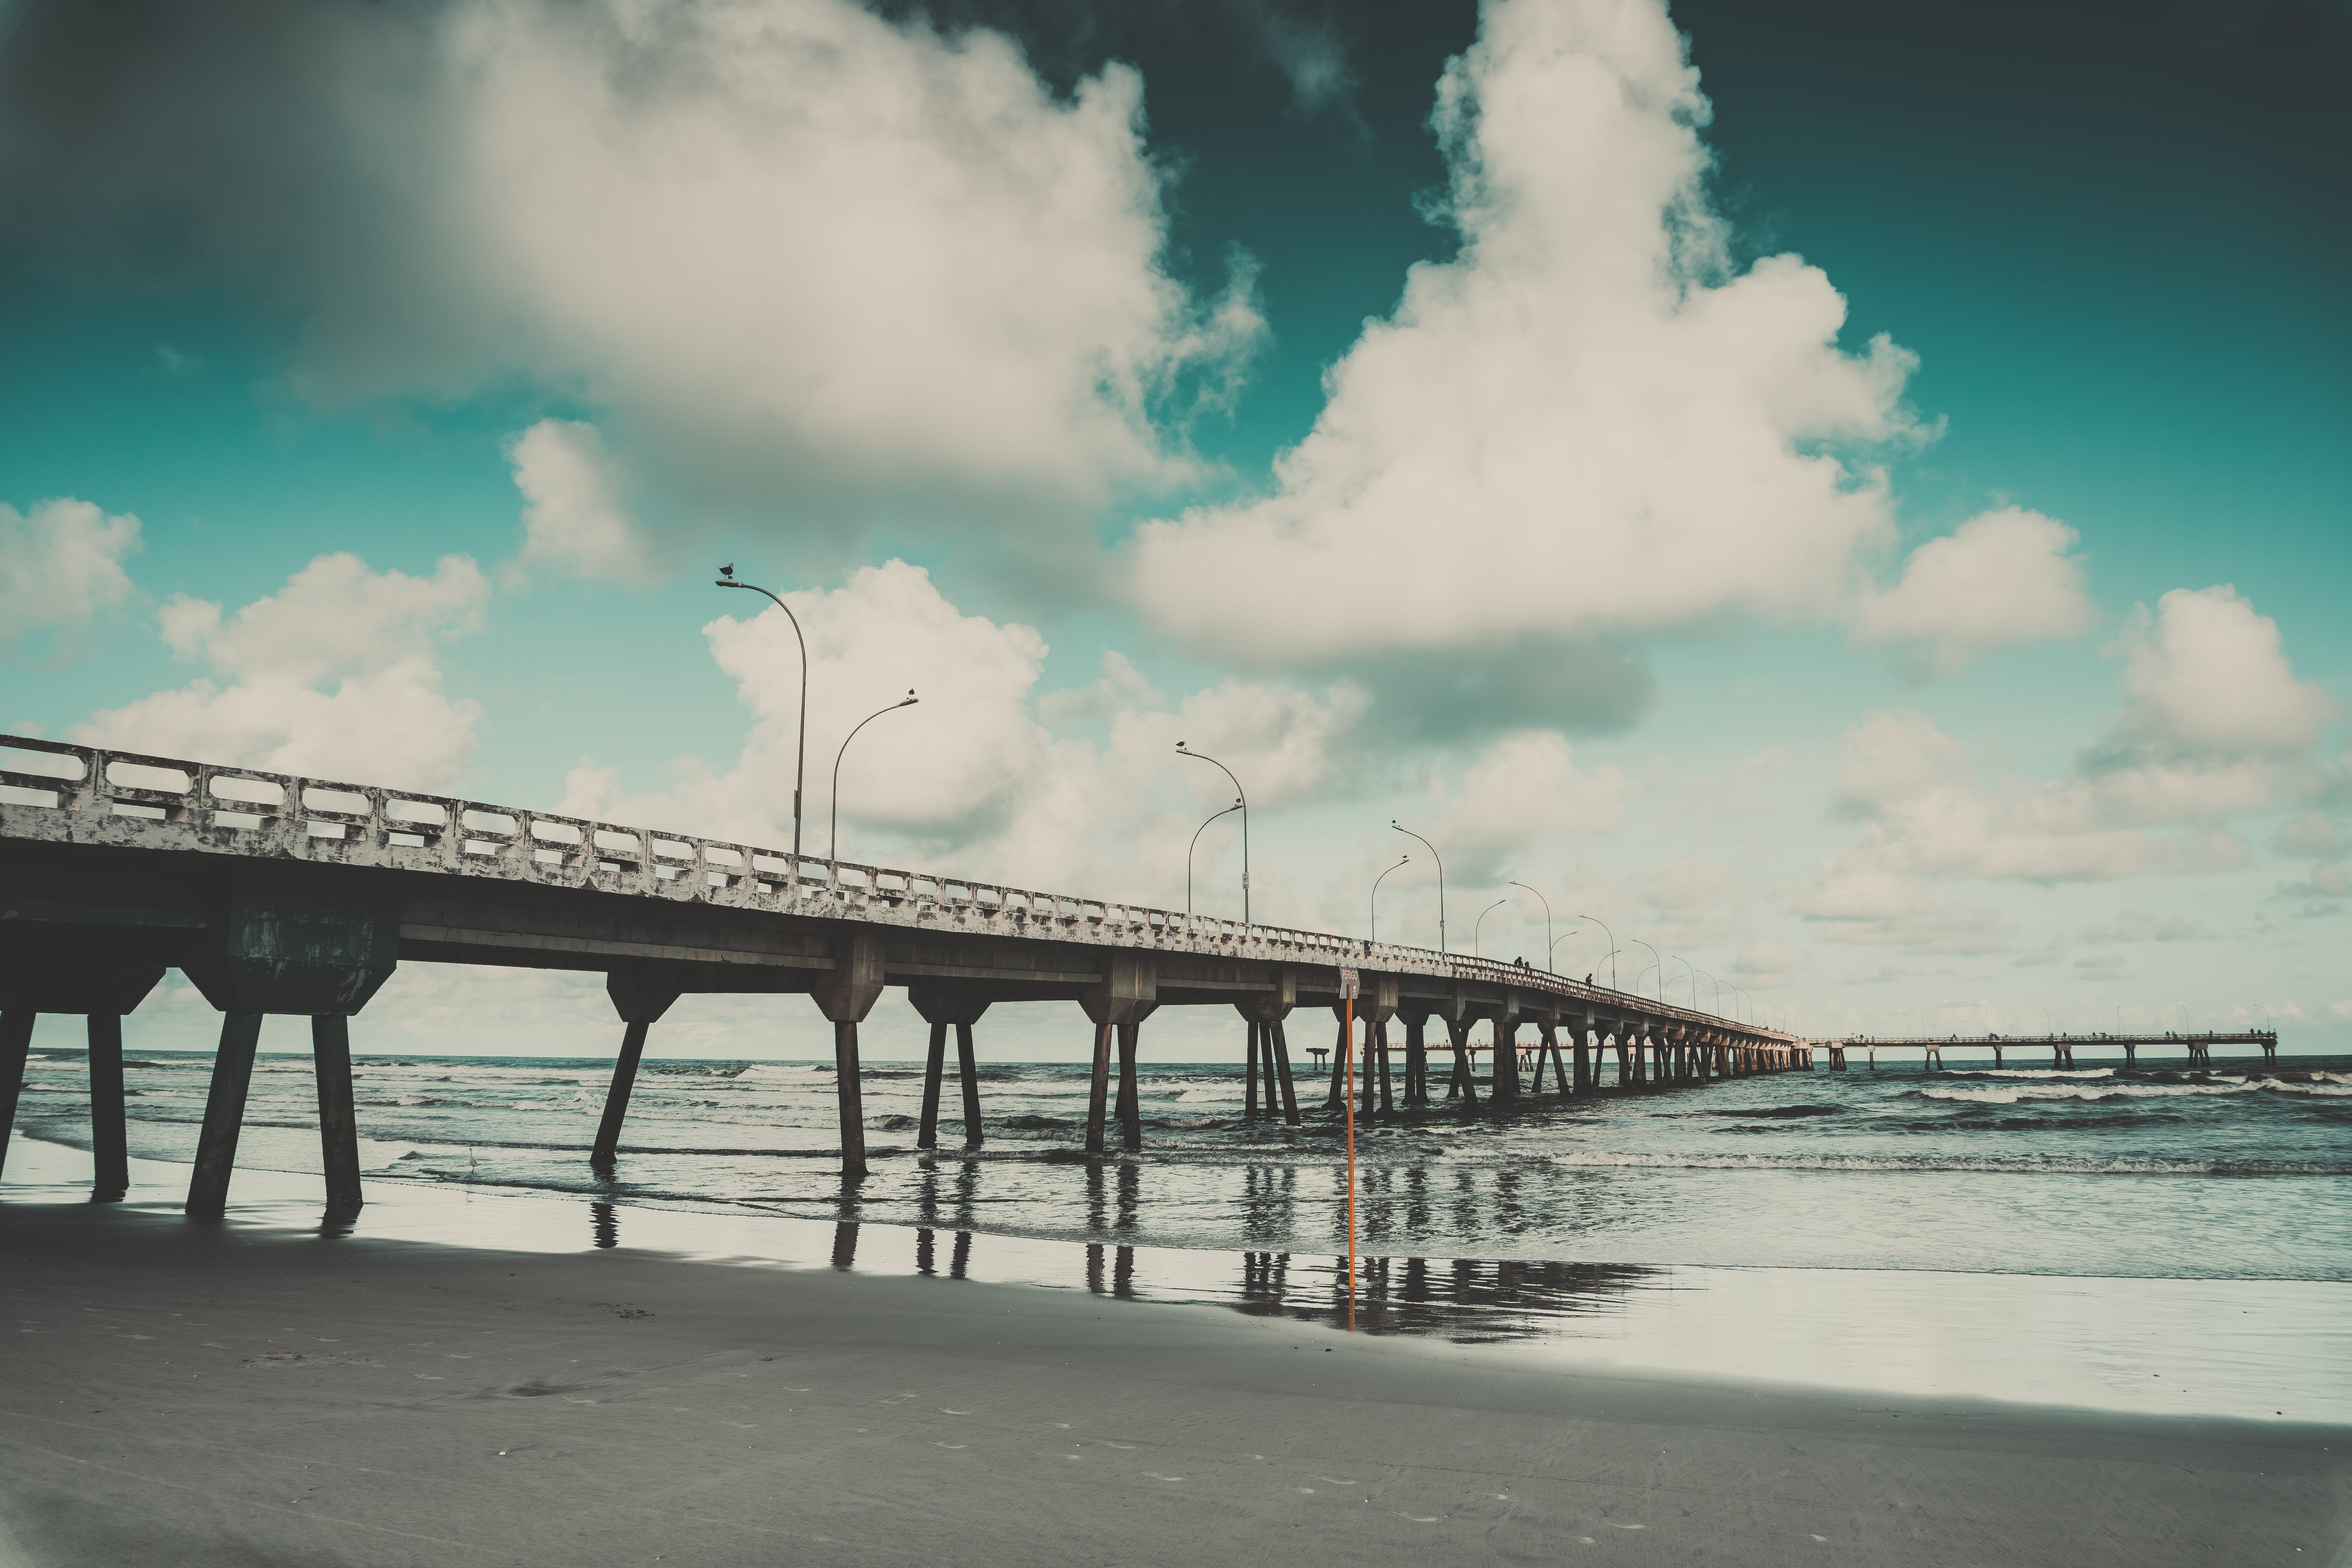 beach, bridge, clouds